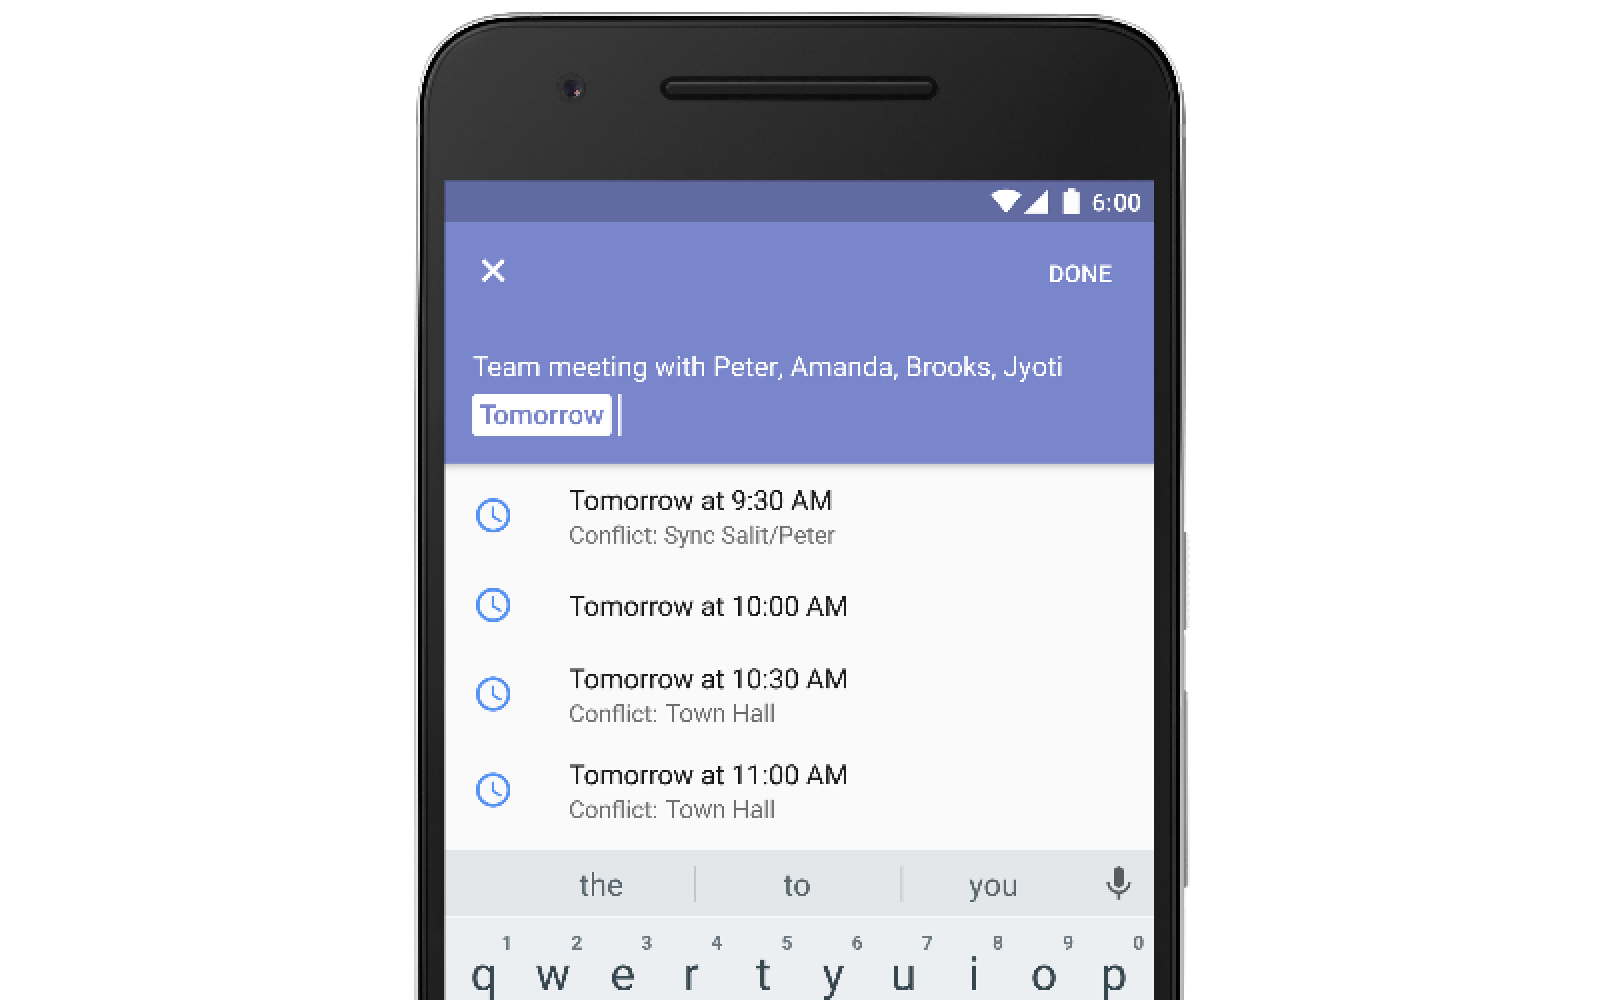 Google Calendar on Android will now tell you when you're free for an event